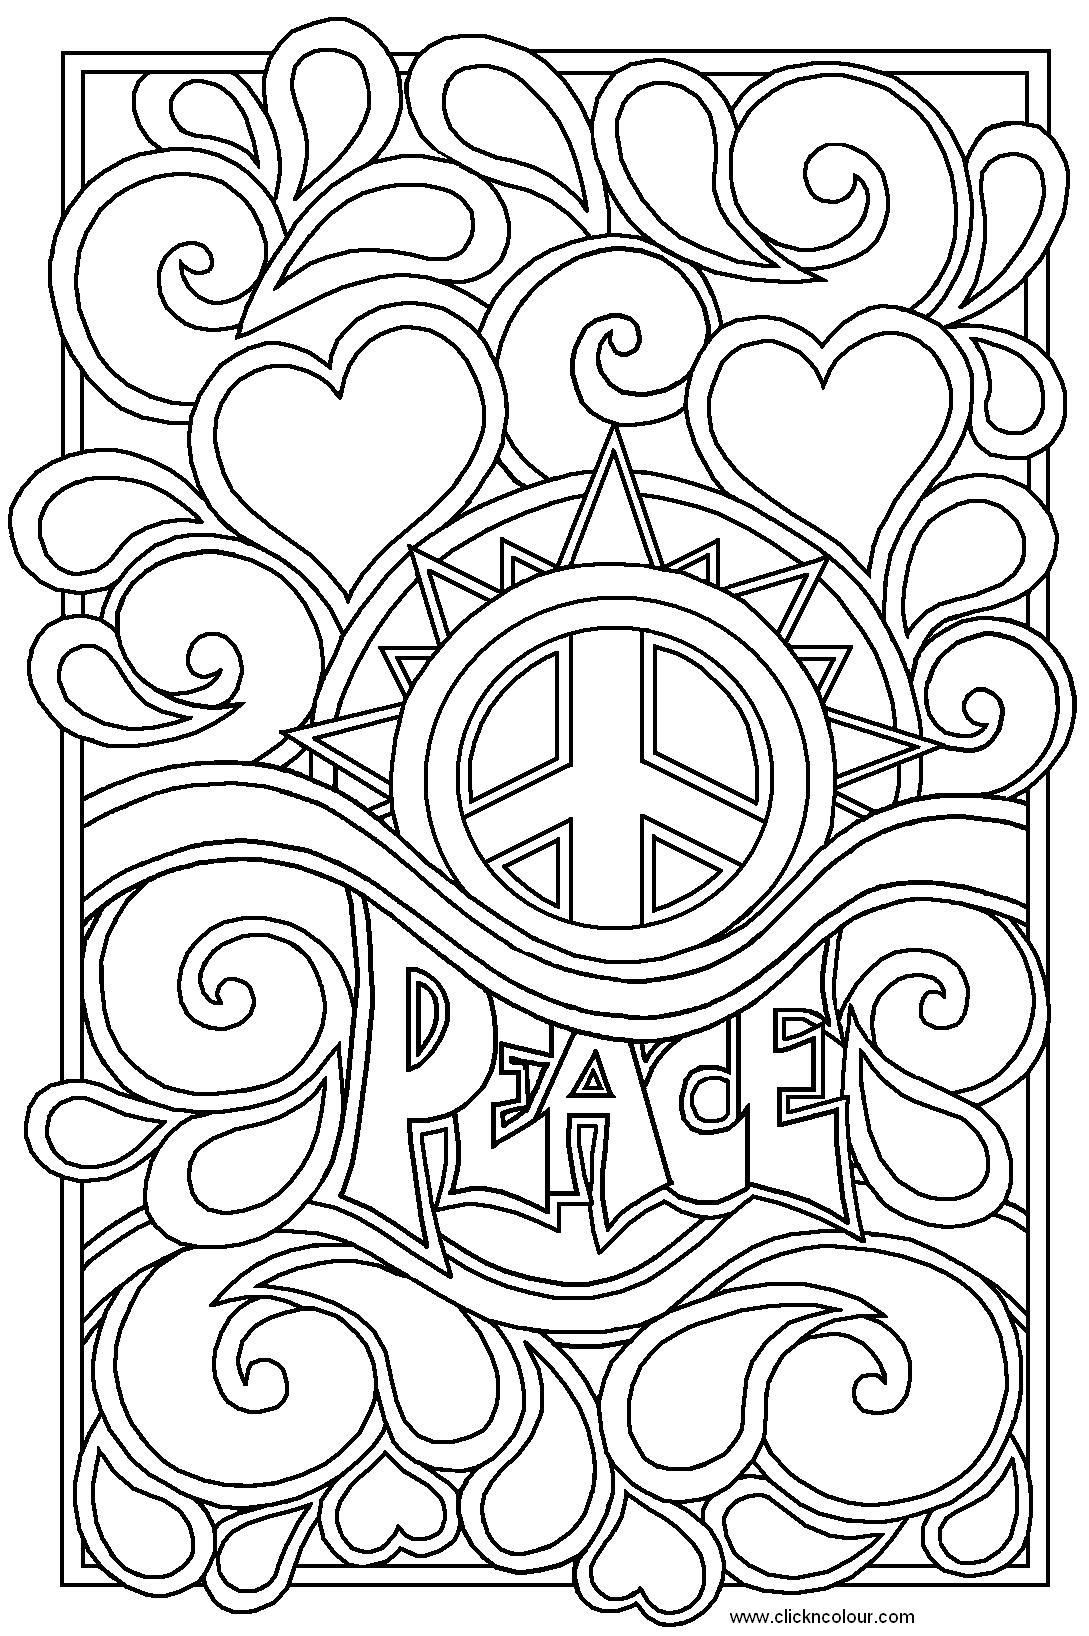 Heart Coloring Pages For Teenagers | Peace And Love